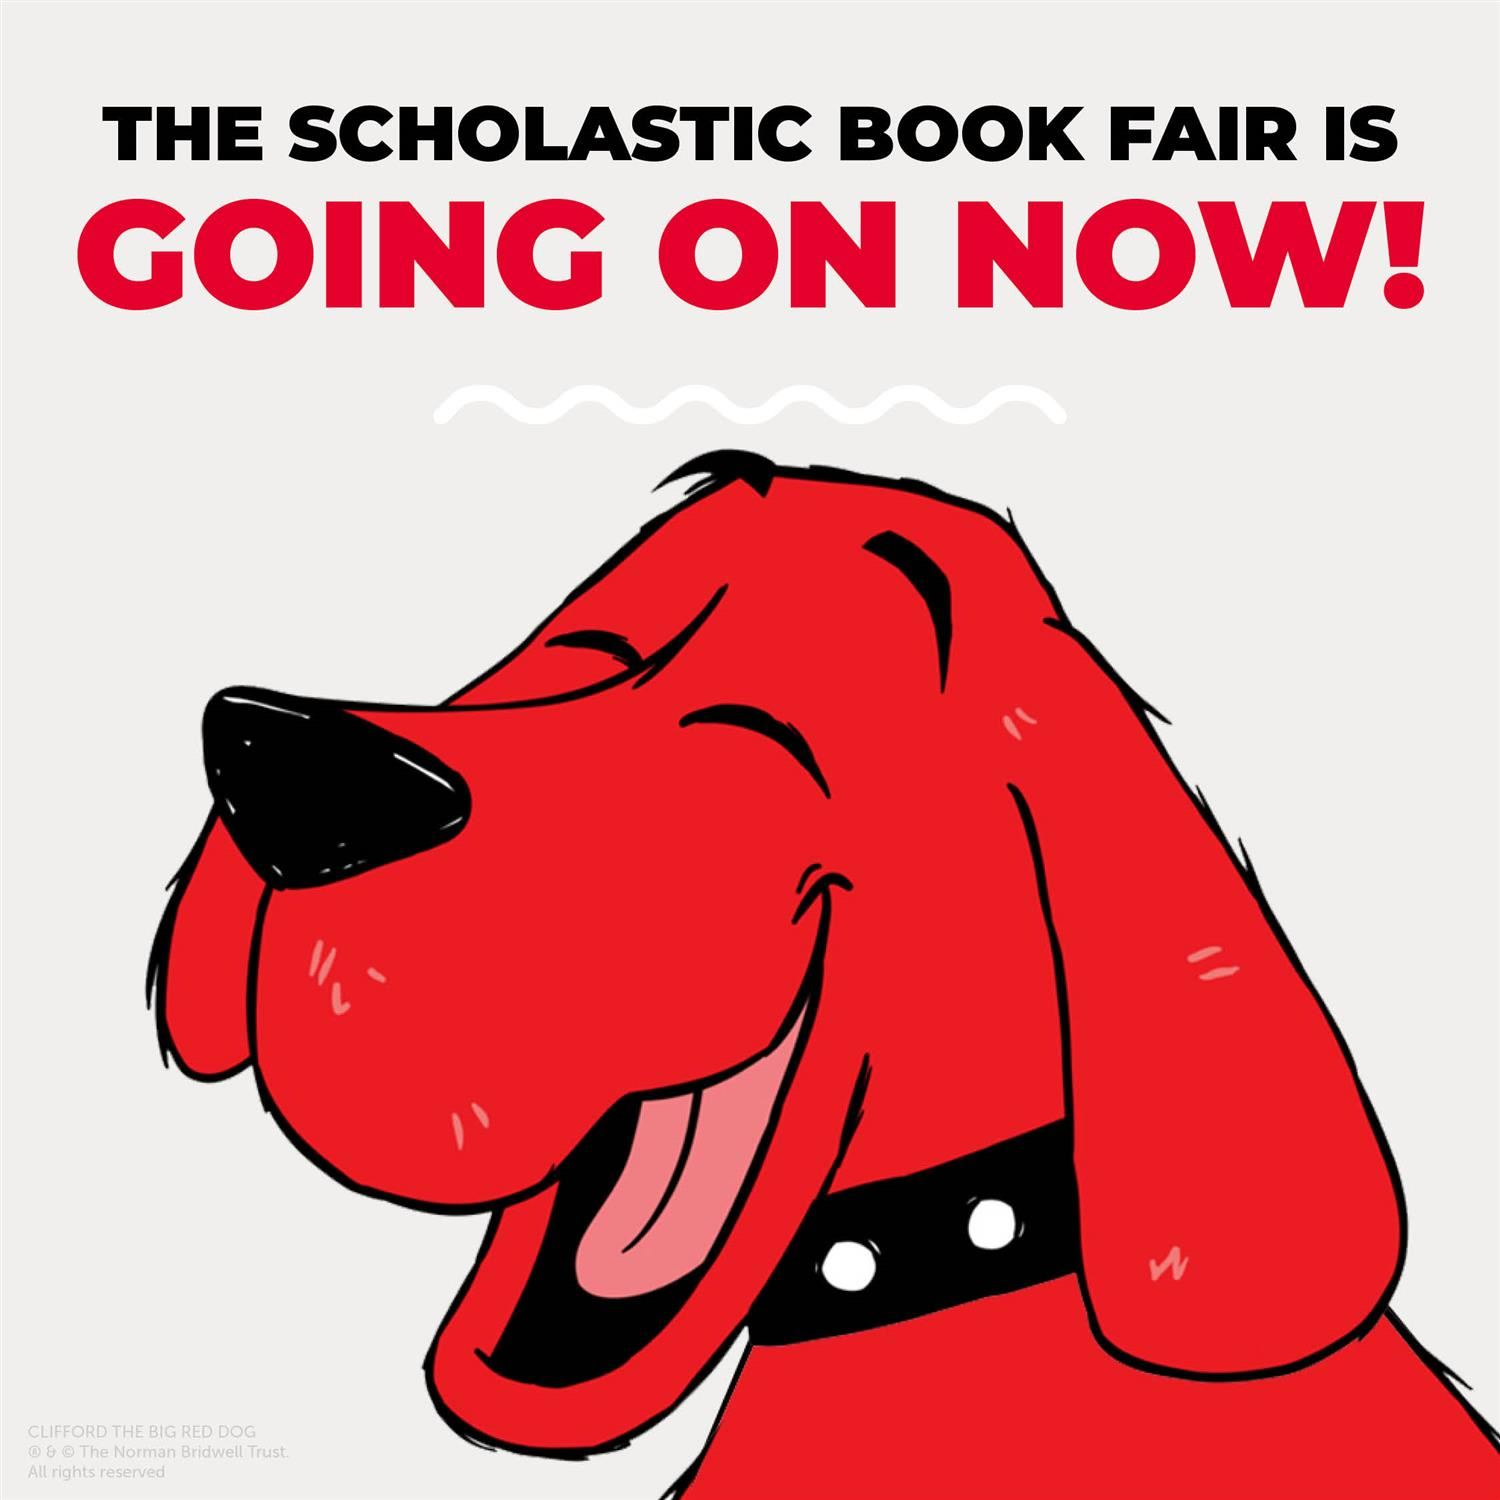 The book fair is going on now!